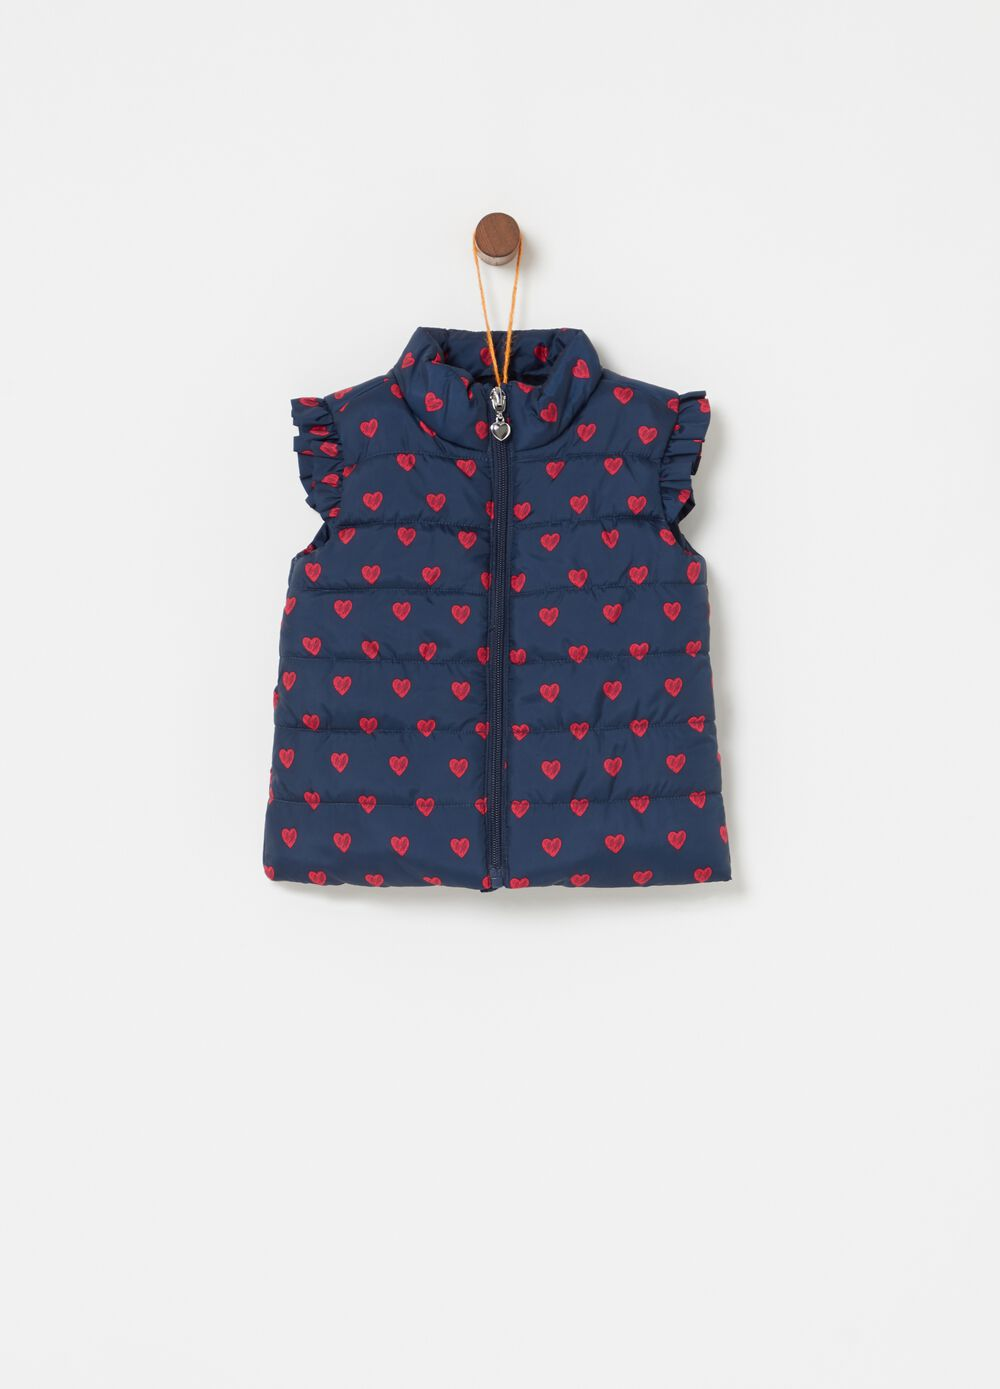 Padded gilet with pleating and hearts